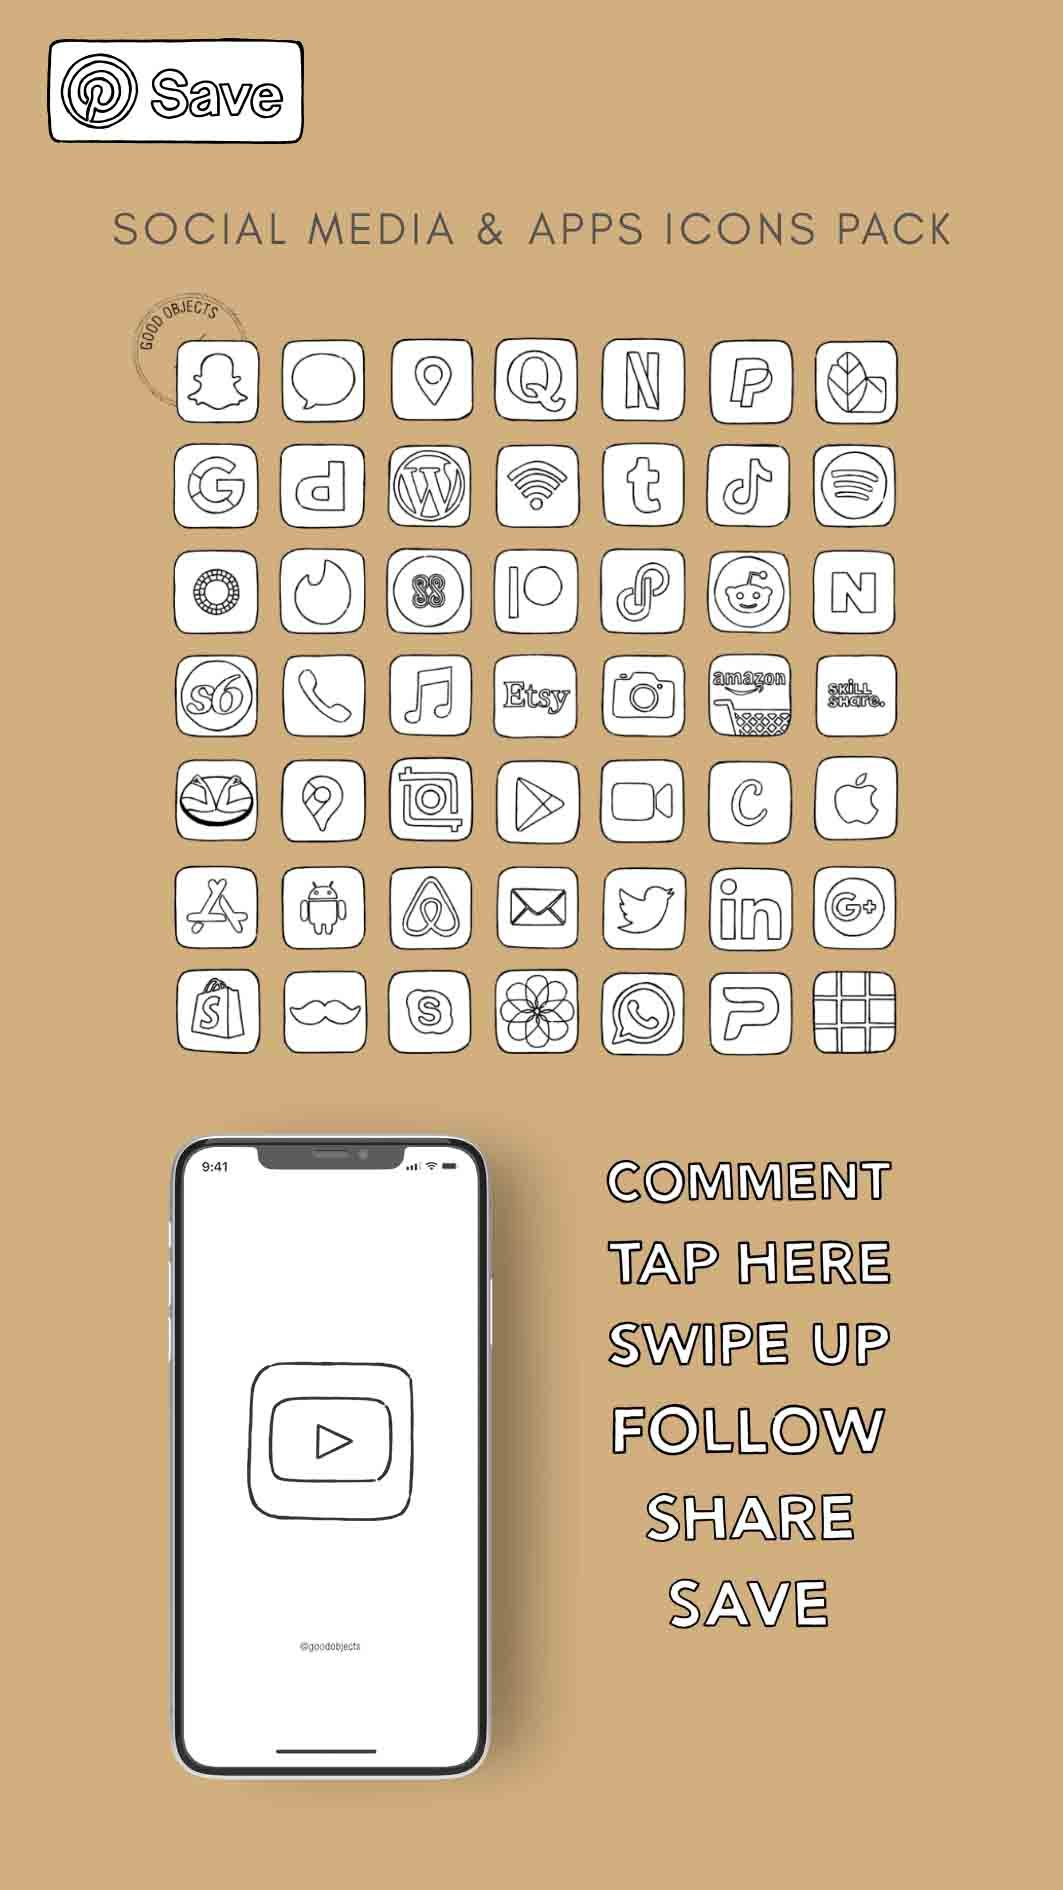 Social Media & Apps Icons Pack - Black and white + beige watercolor icons